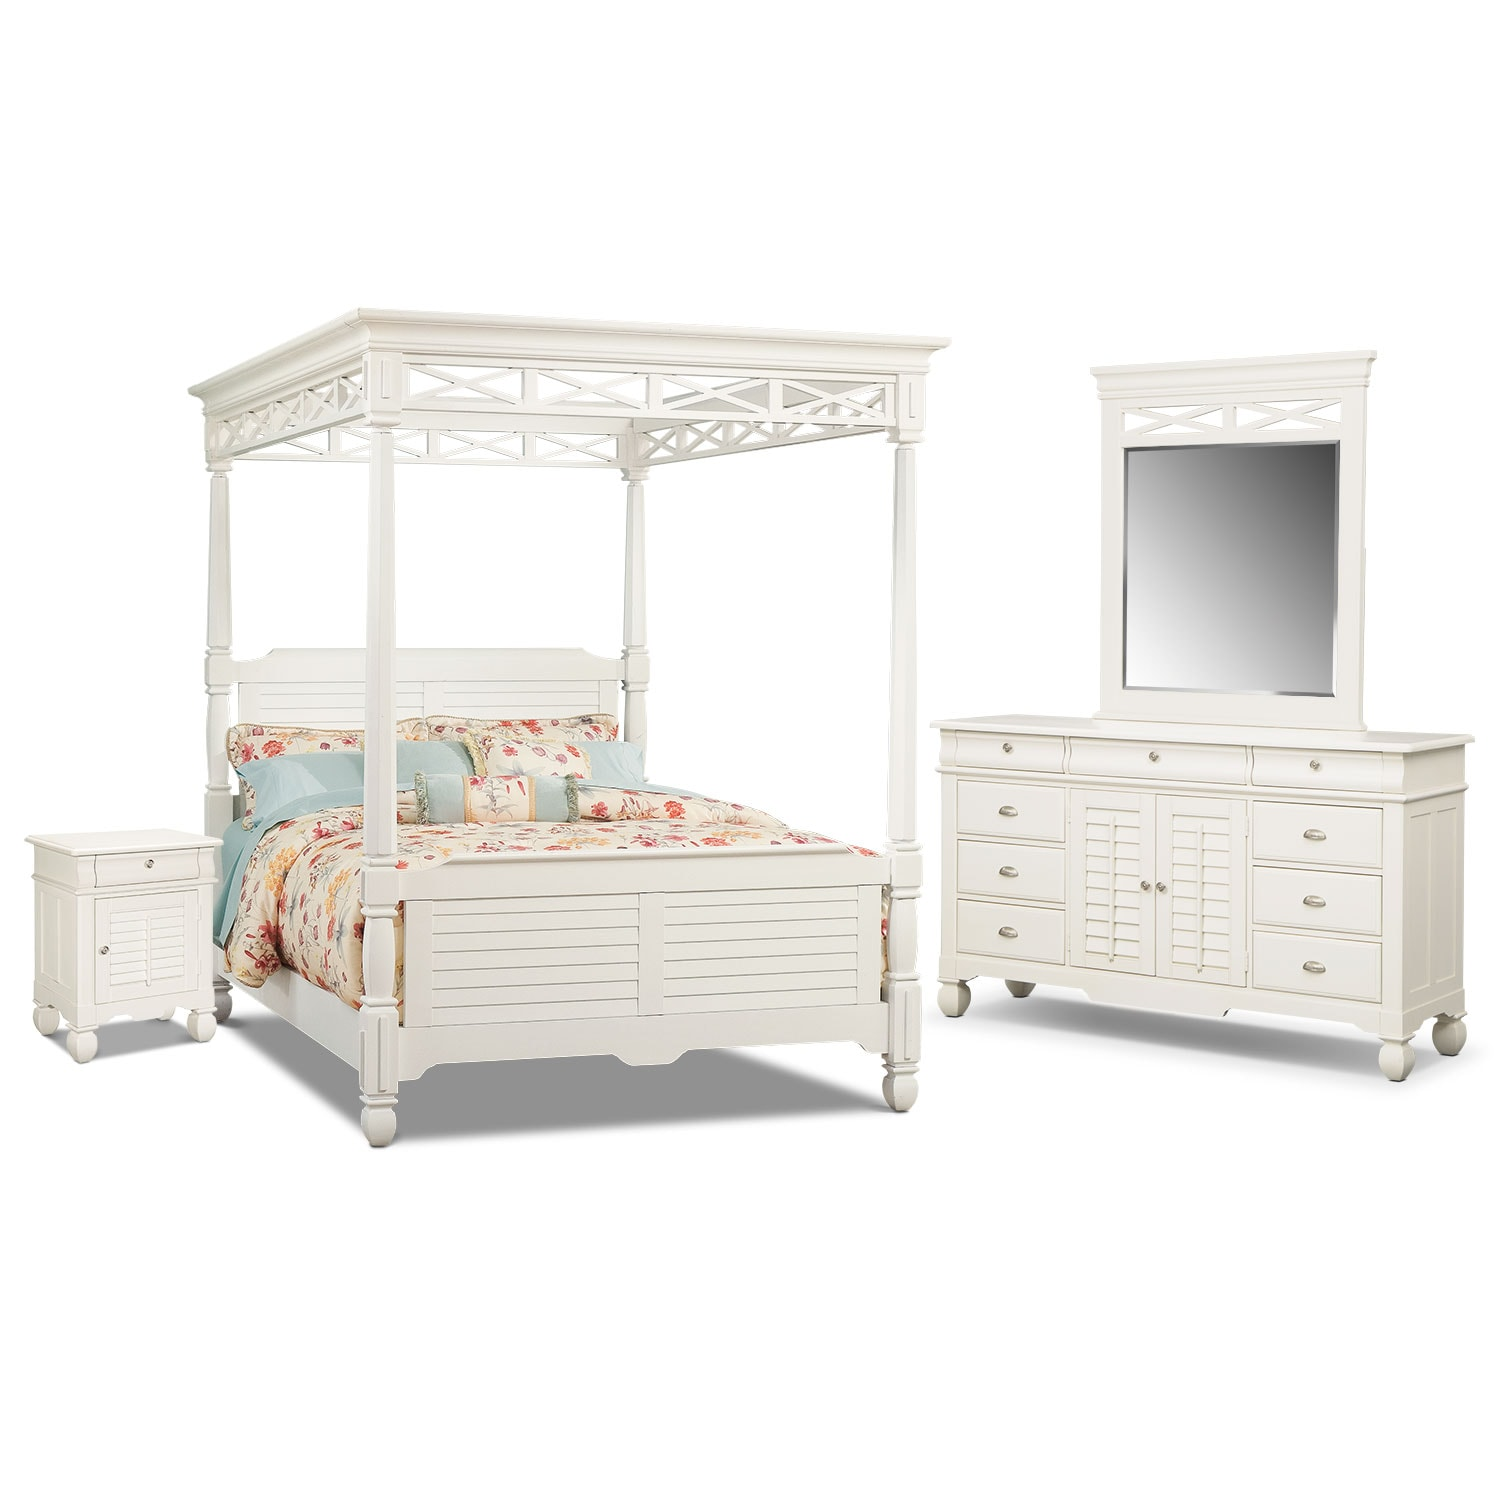 Bedroom Furniture - Plantation Cove Canopy 6-Piece Bedroom Set w/Door Nightstand - White